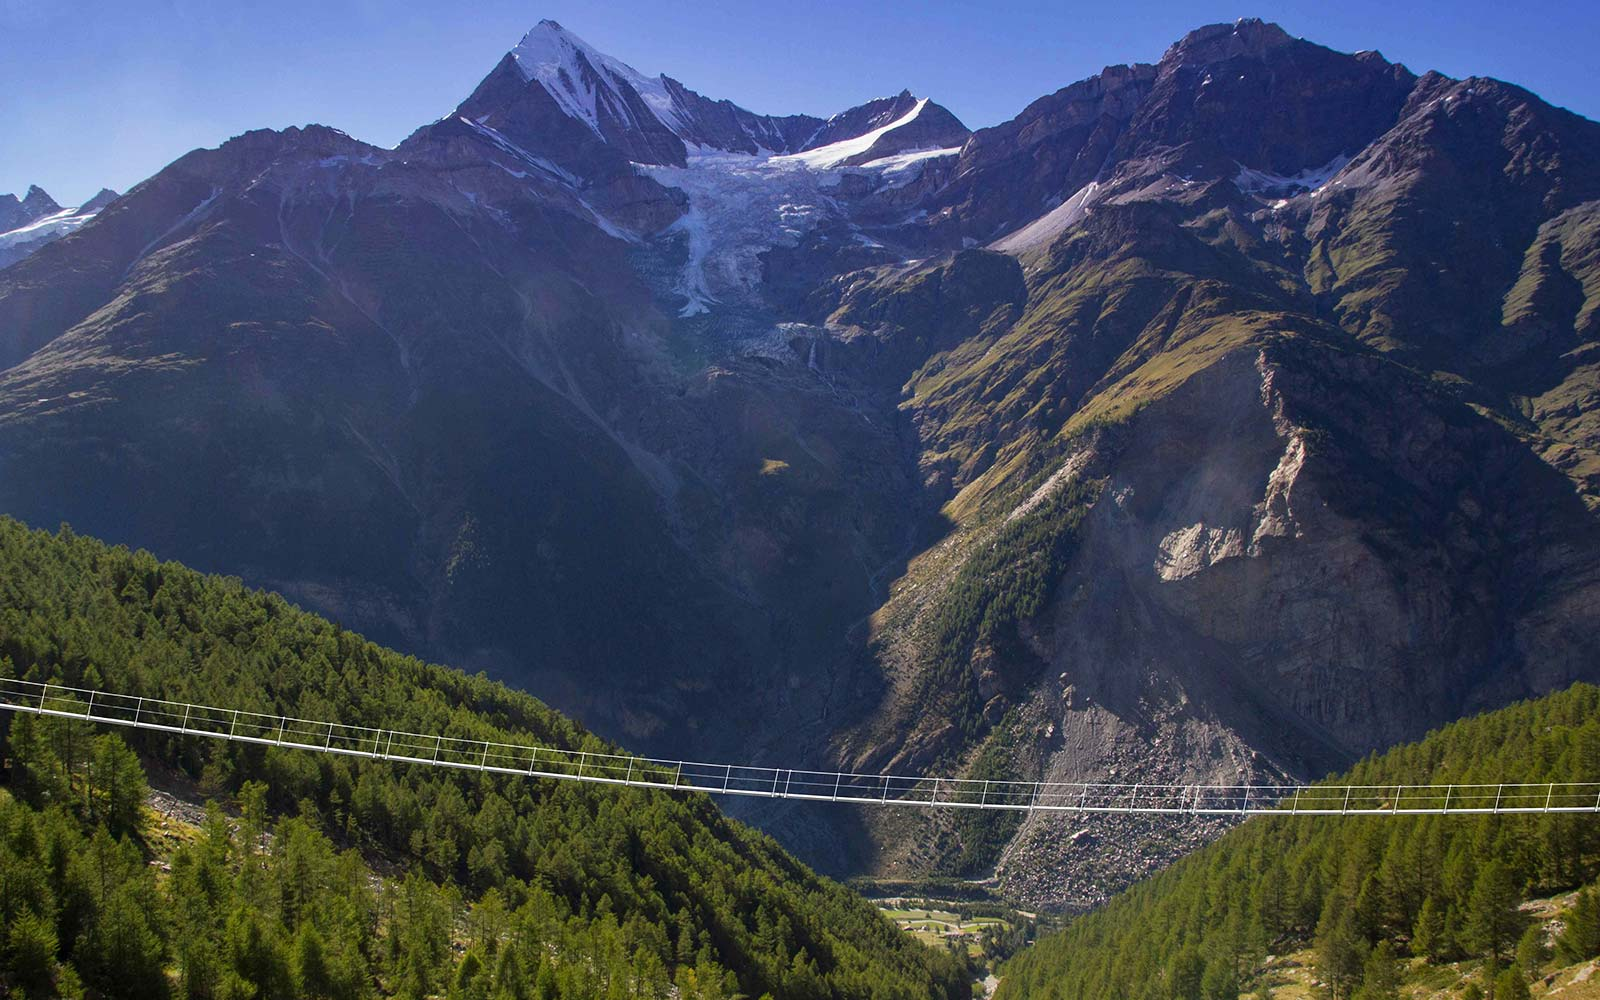 Europaweg Grachen Zermatt Switzerland Mountain Alps Longest Suspension Bridge Hike